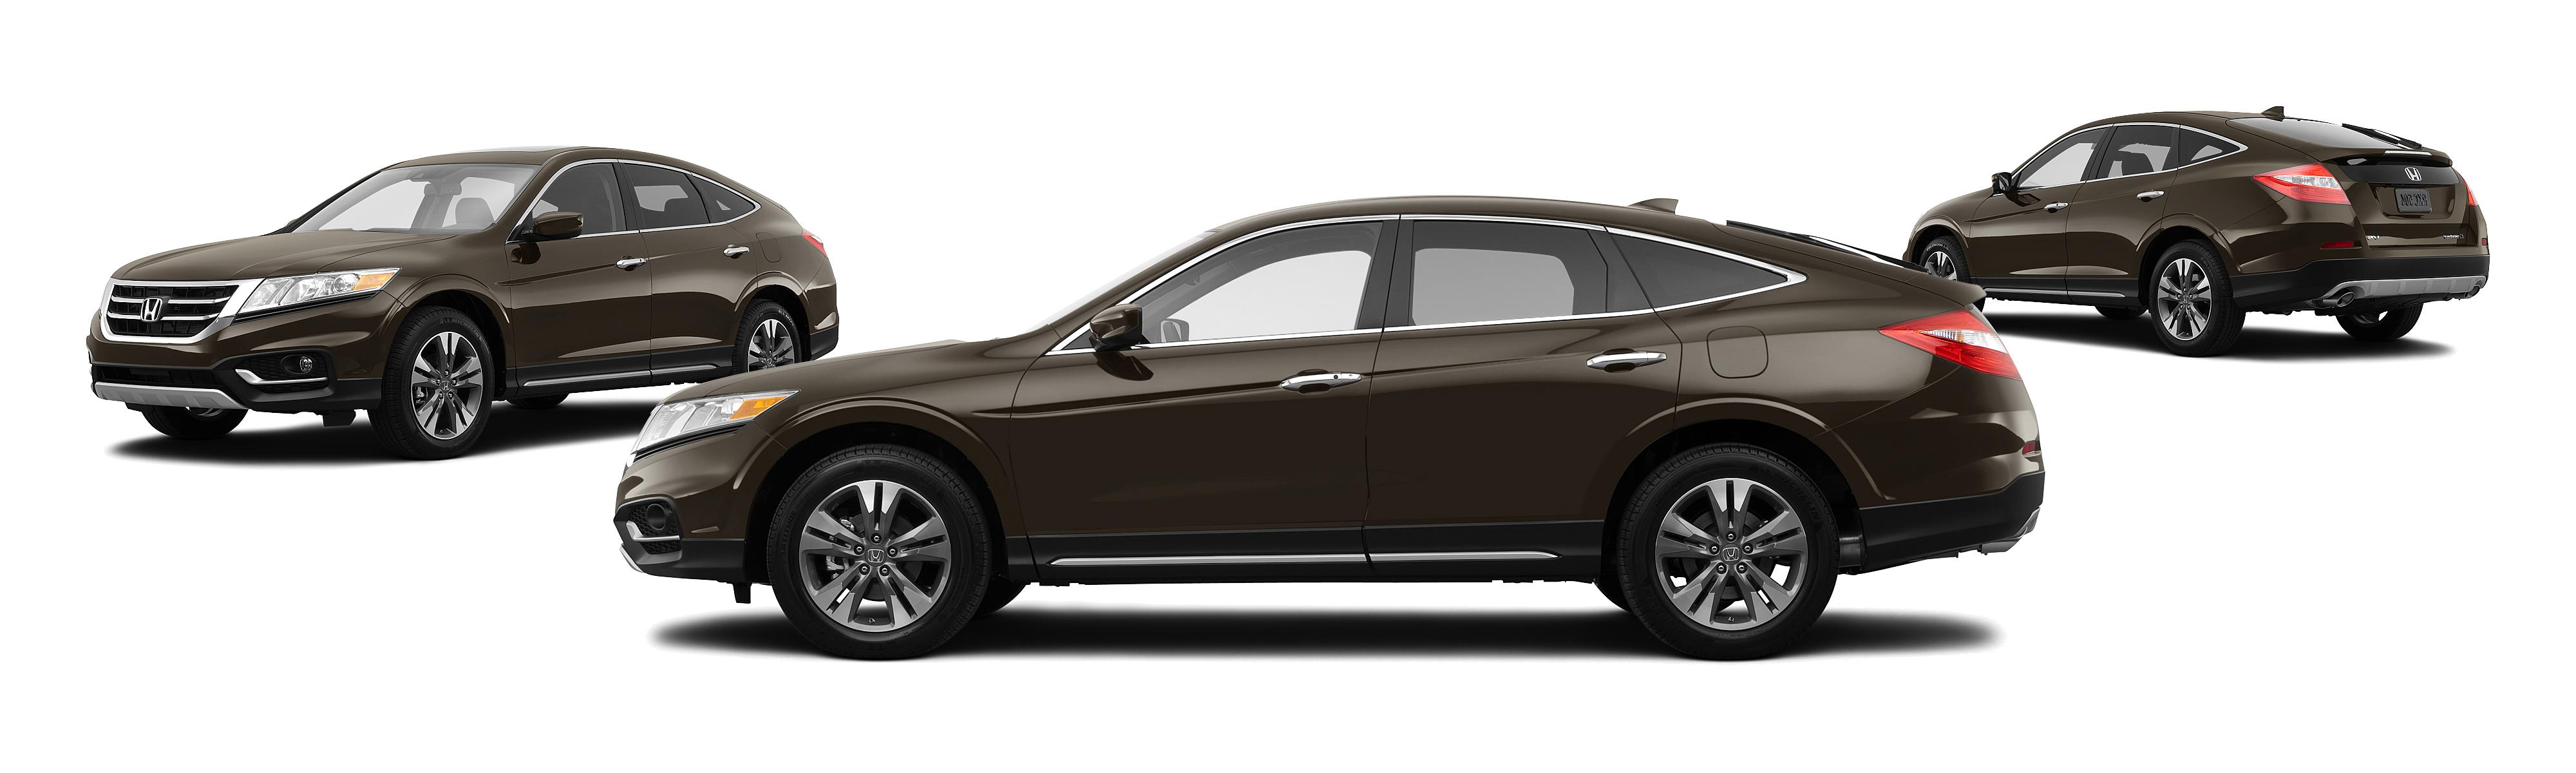 l wheel crosstour honda year holmes to jake model discontinued news ex after be steering